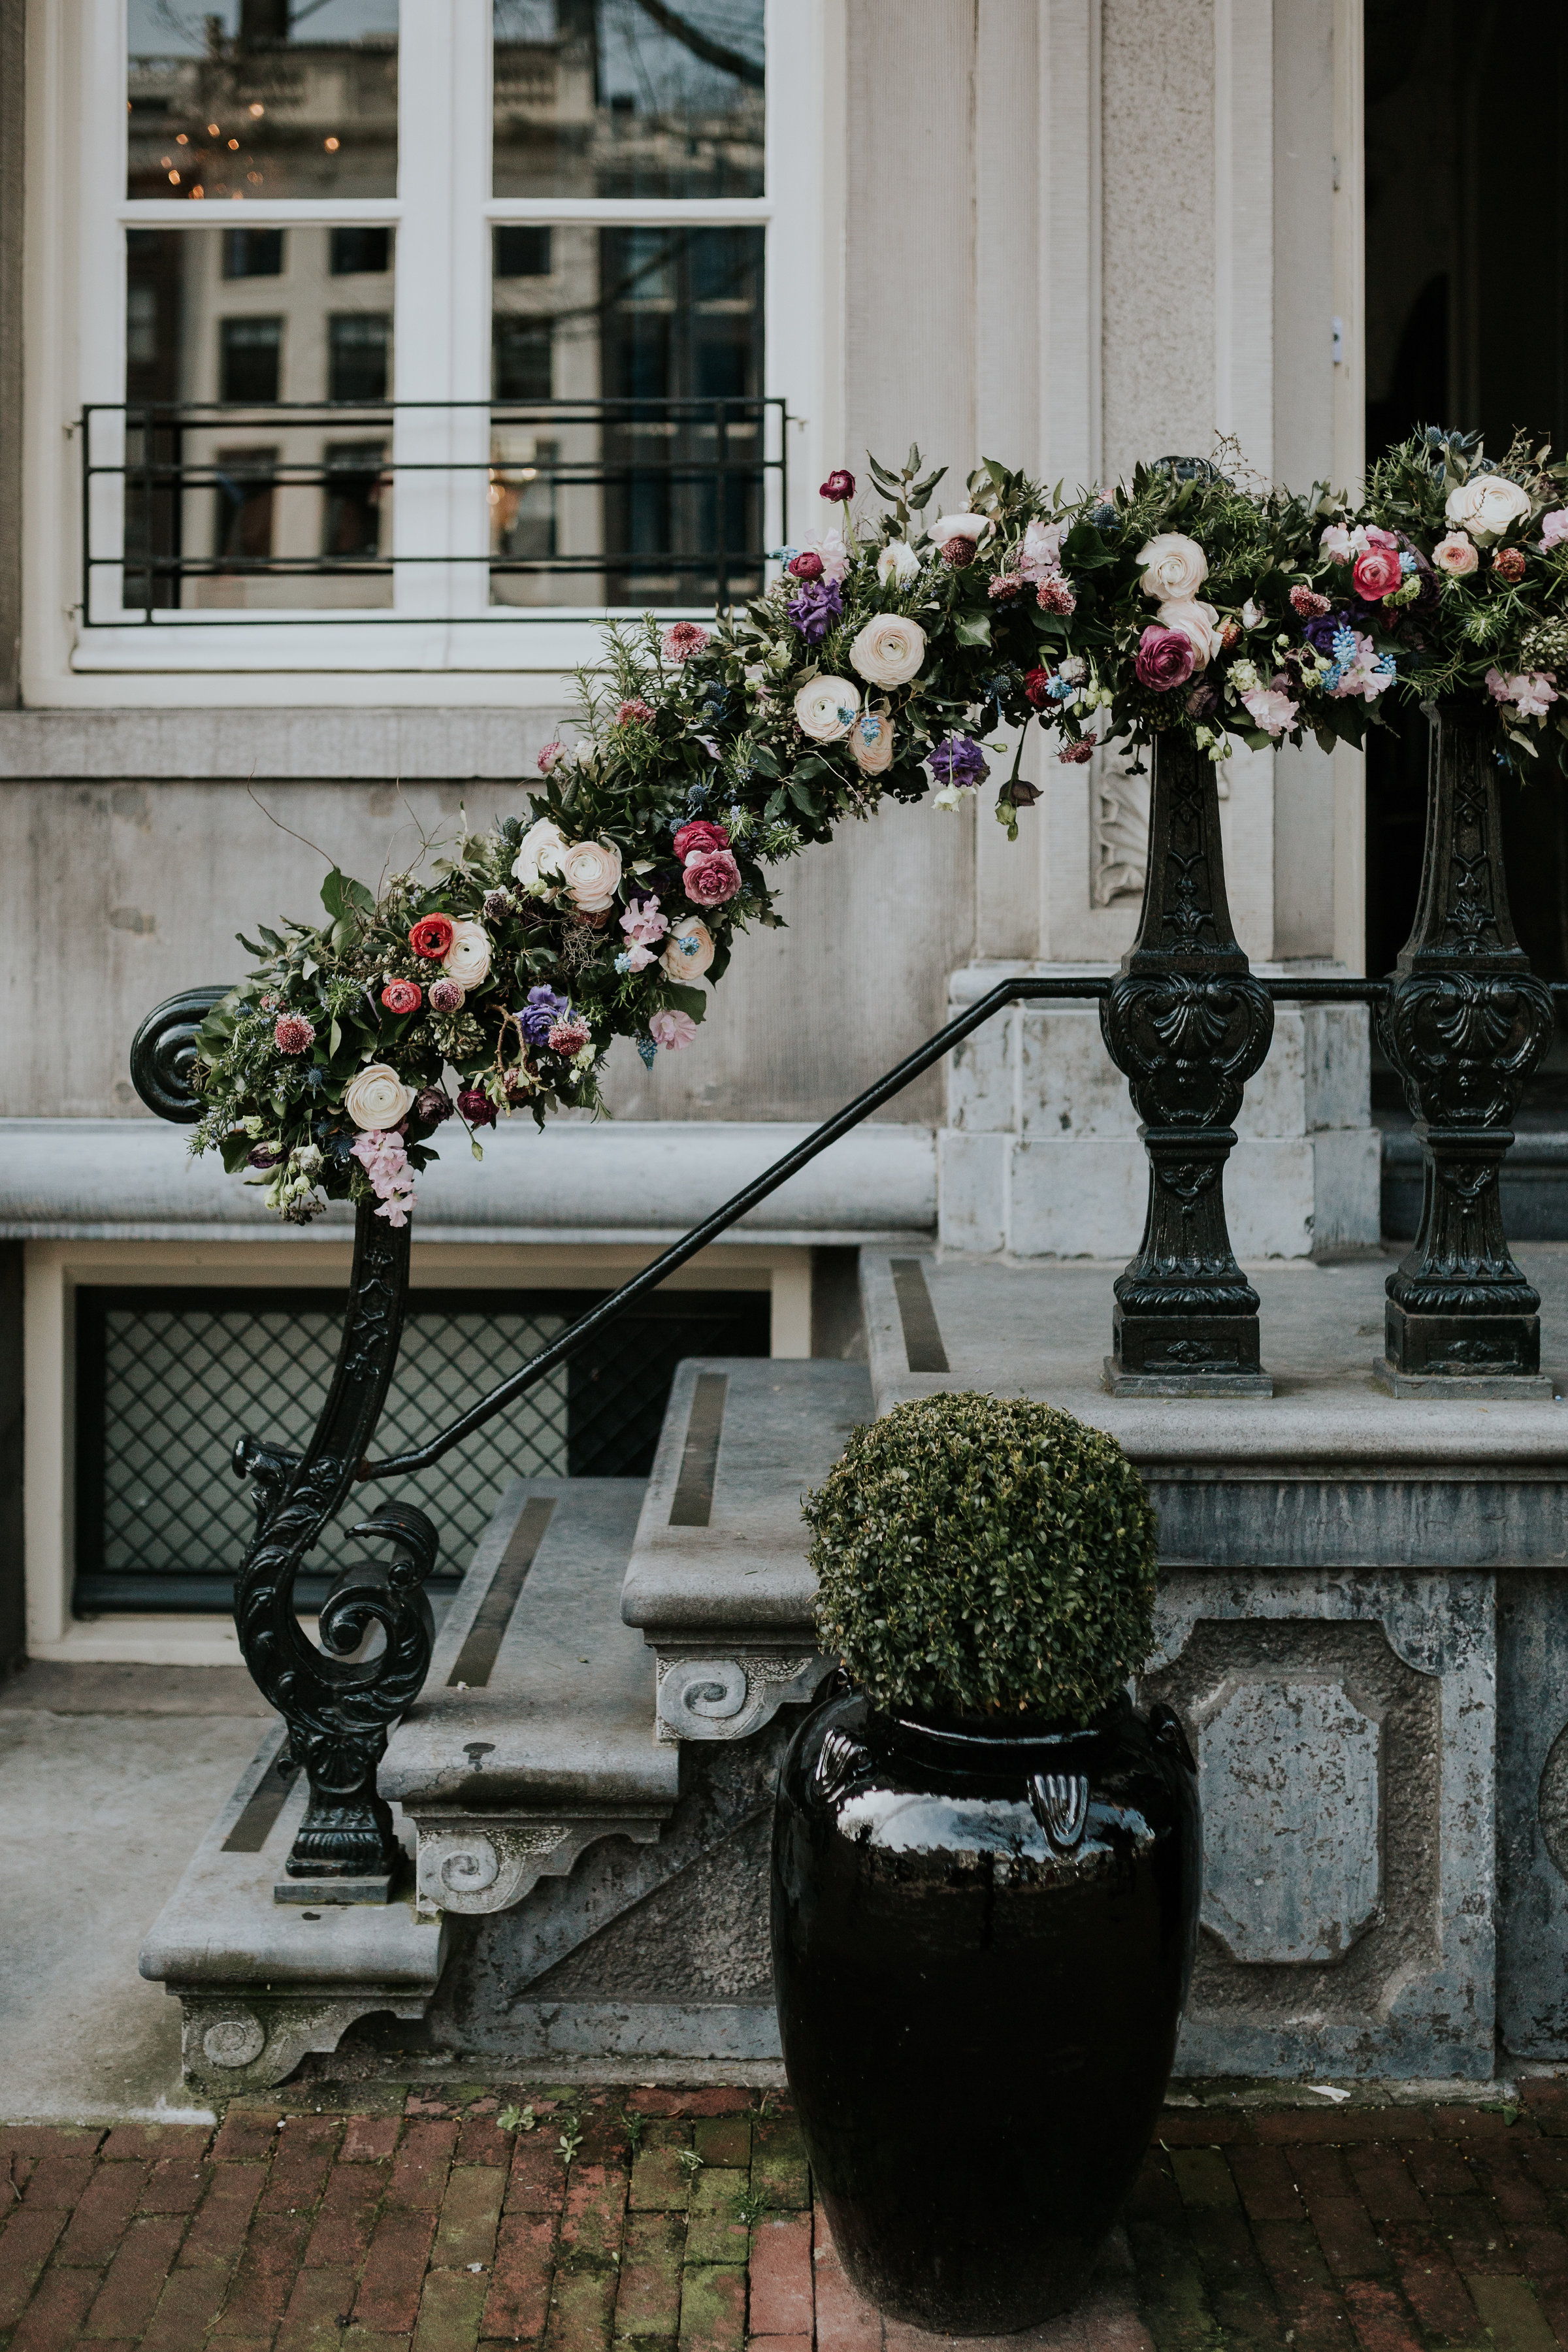 A.P Bloem florist ceremony ceremonie bloemist evenement bloemen amsterdam luxury golden age guirlande garland florals pulitzer wedding bruiloft trouwen marriage styling liefde peonies poppies papaver goudeneeuw stilllife dutch garland guirlande